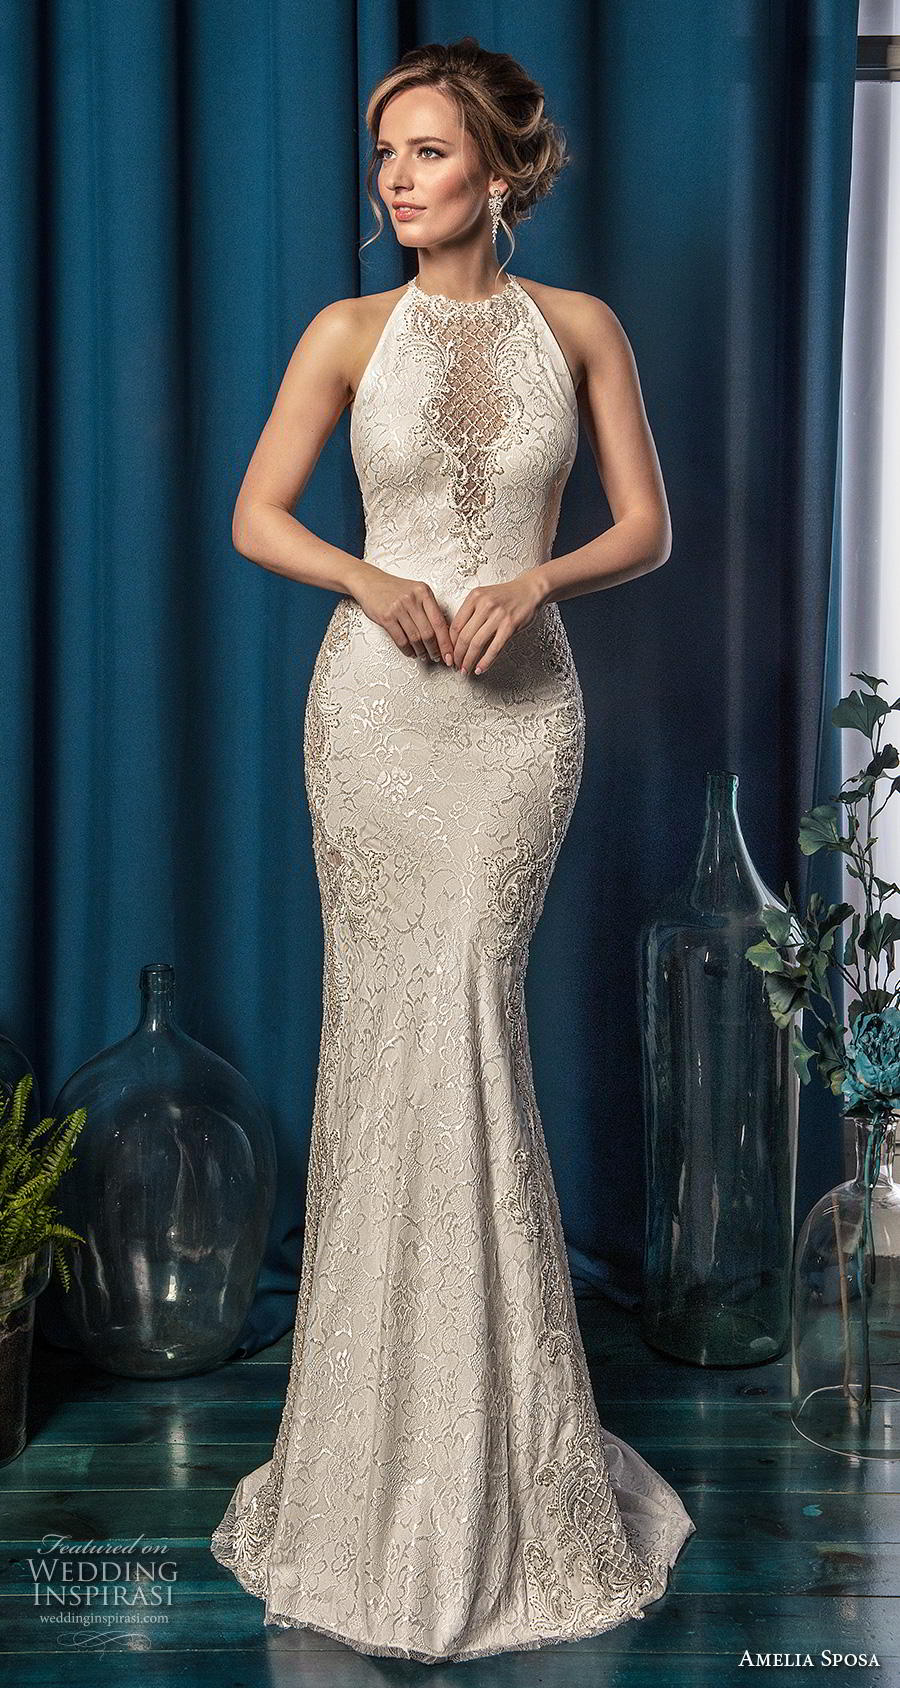 Amelia Sposa 2019 Wedding Dresses Elegance Bridal